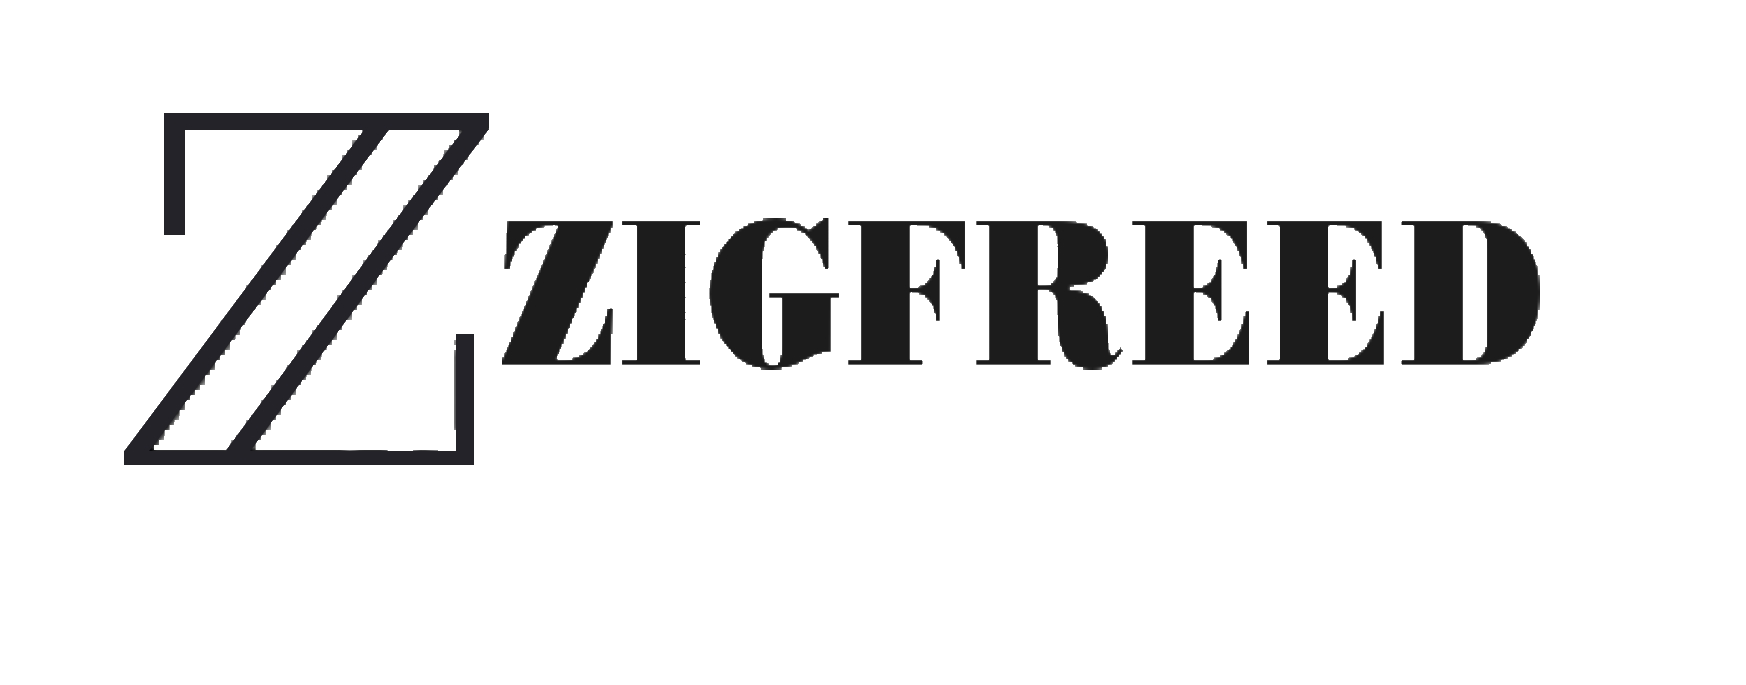 Zigfreed TV